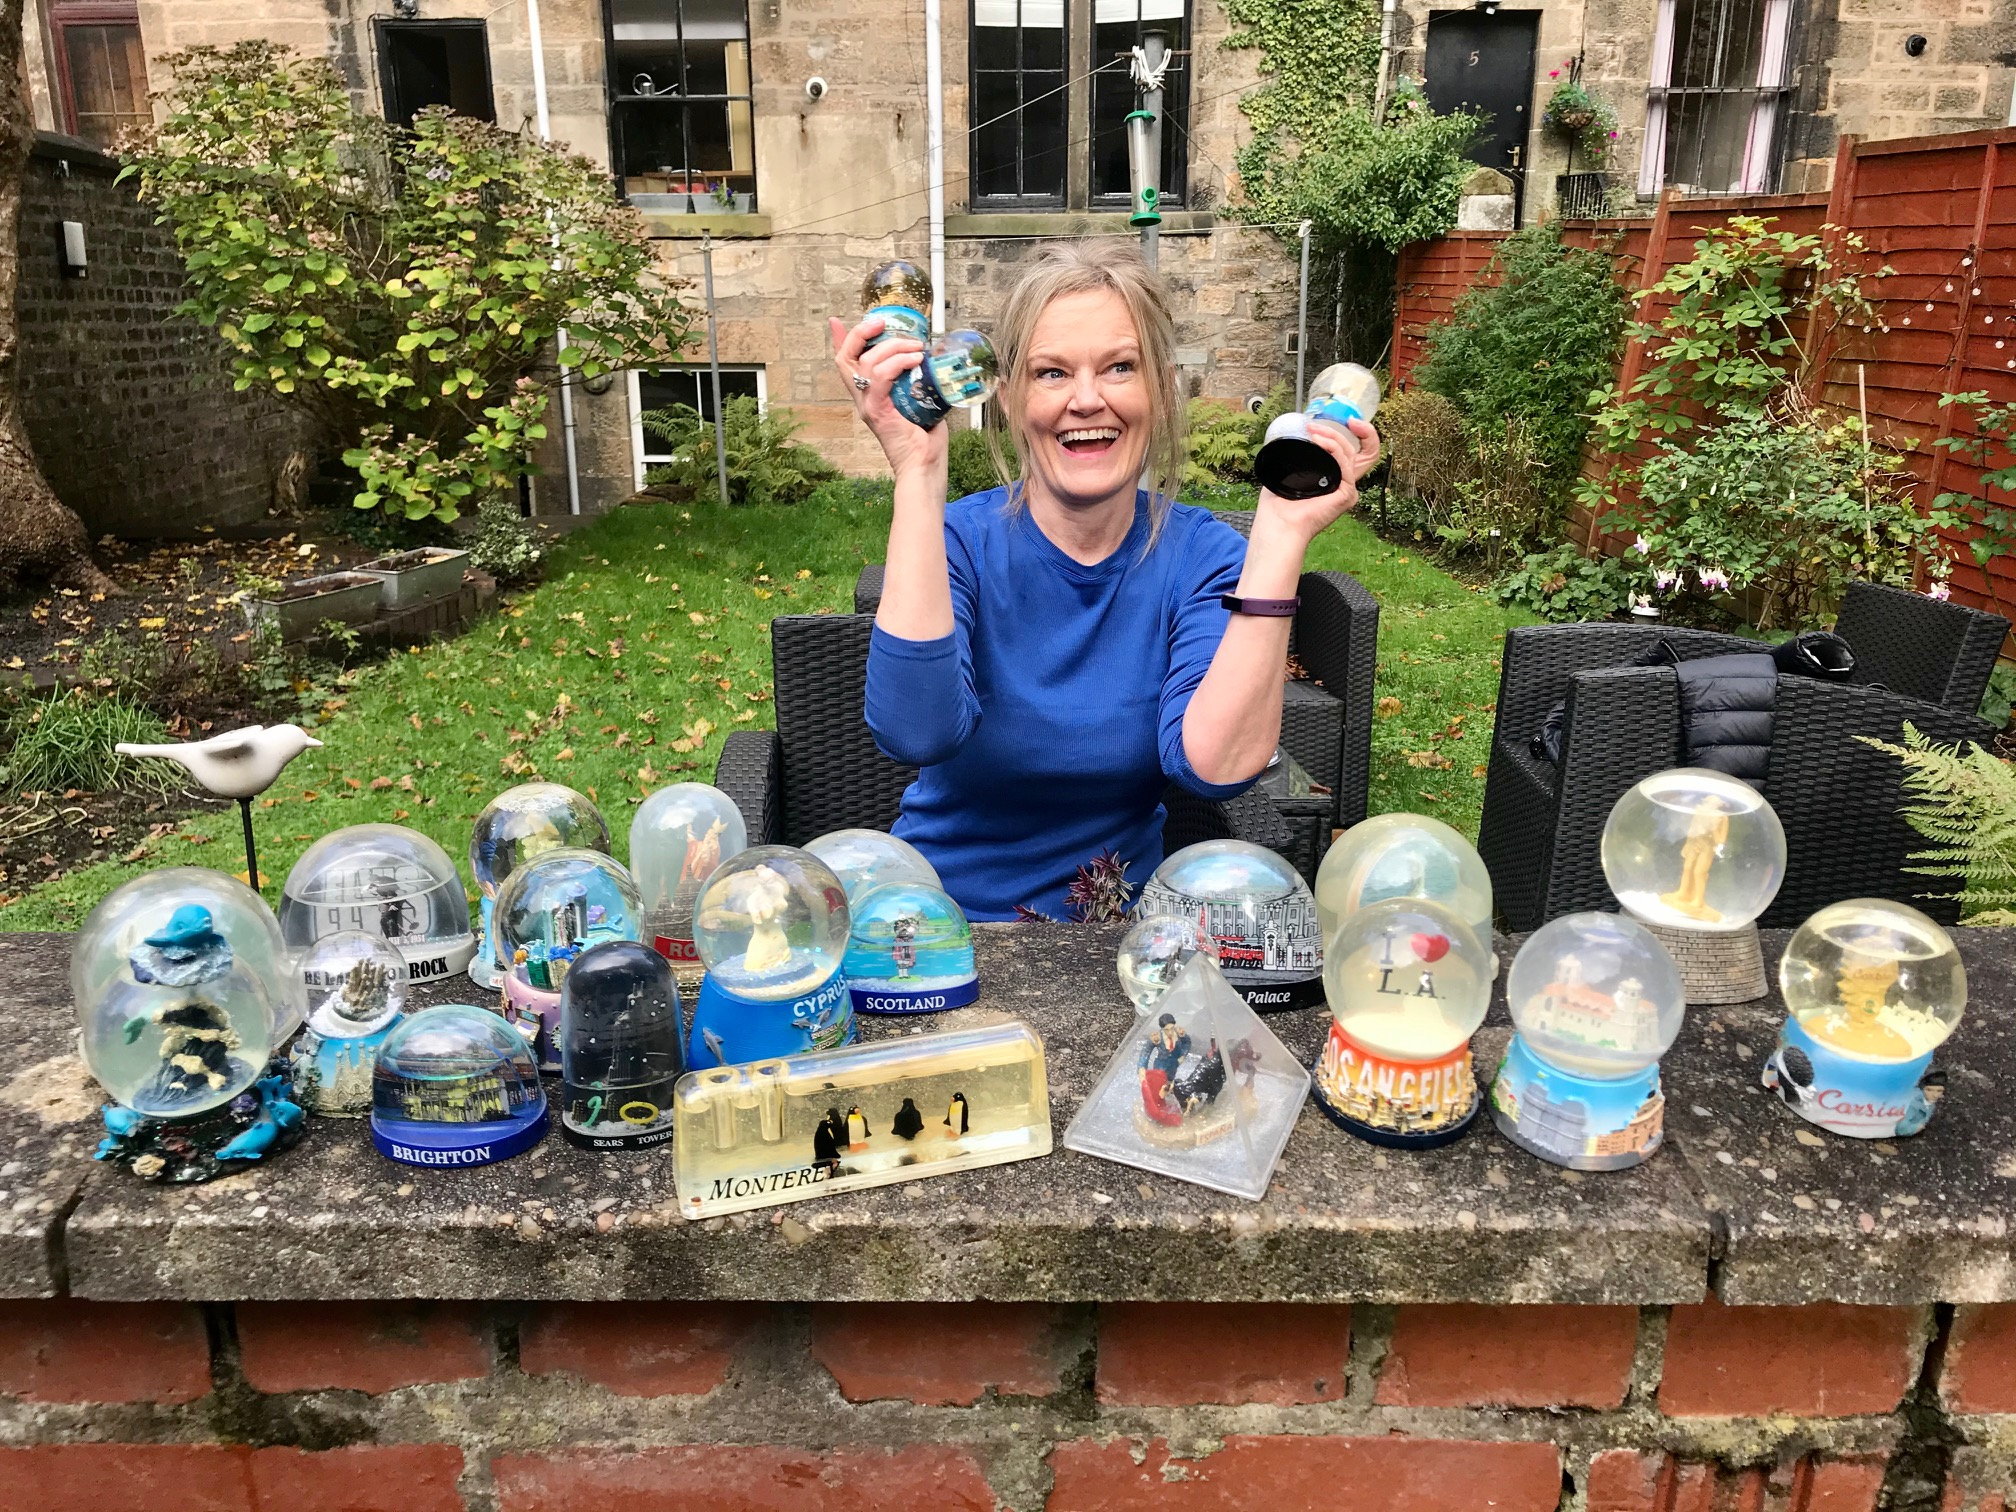 Attractive woman surrounded by her collection of Snow Globes